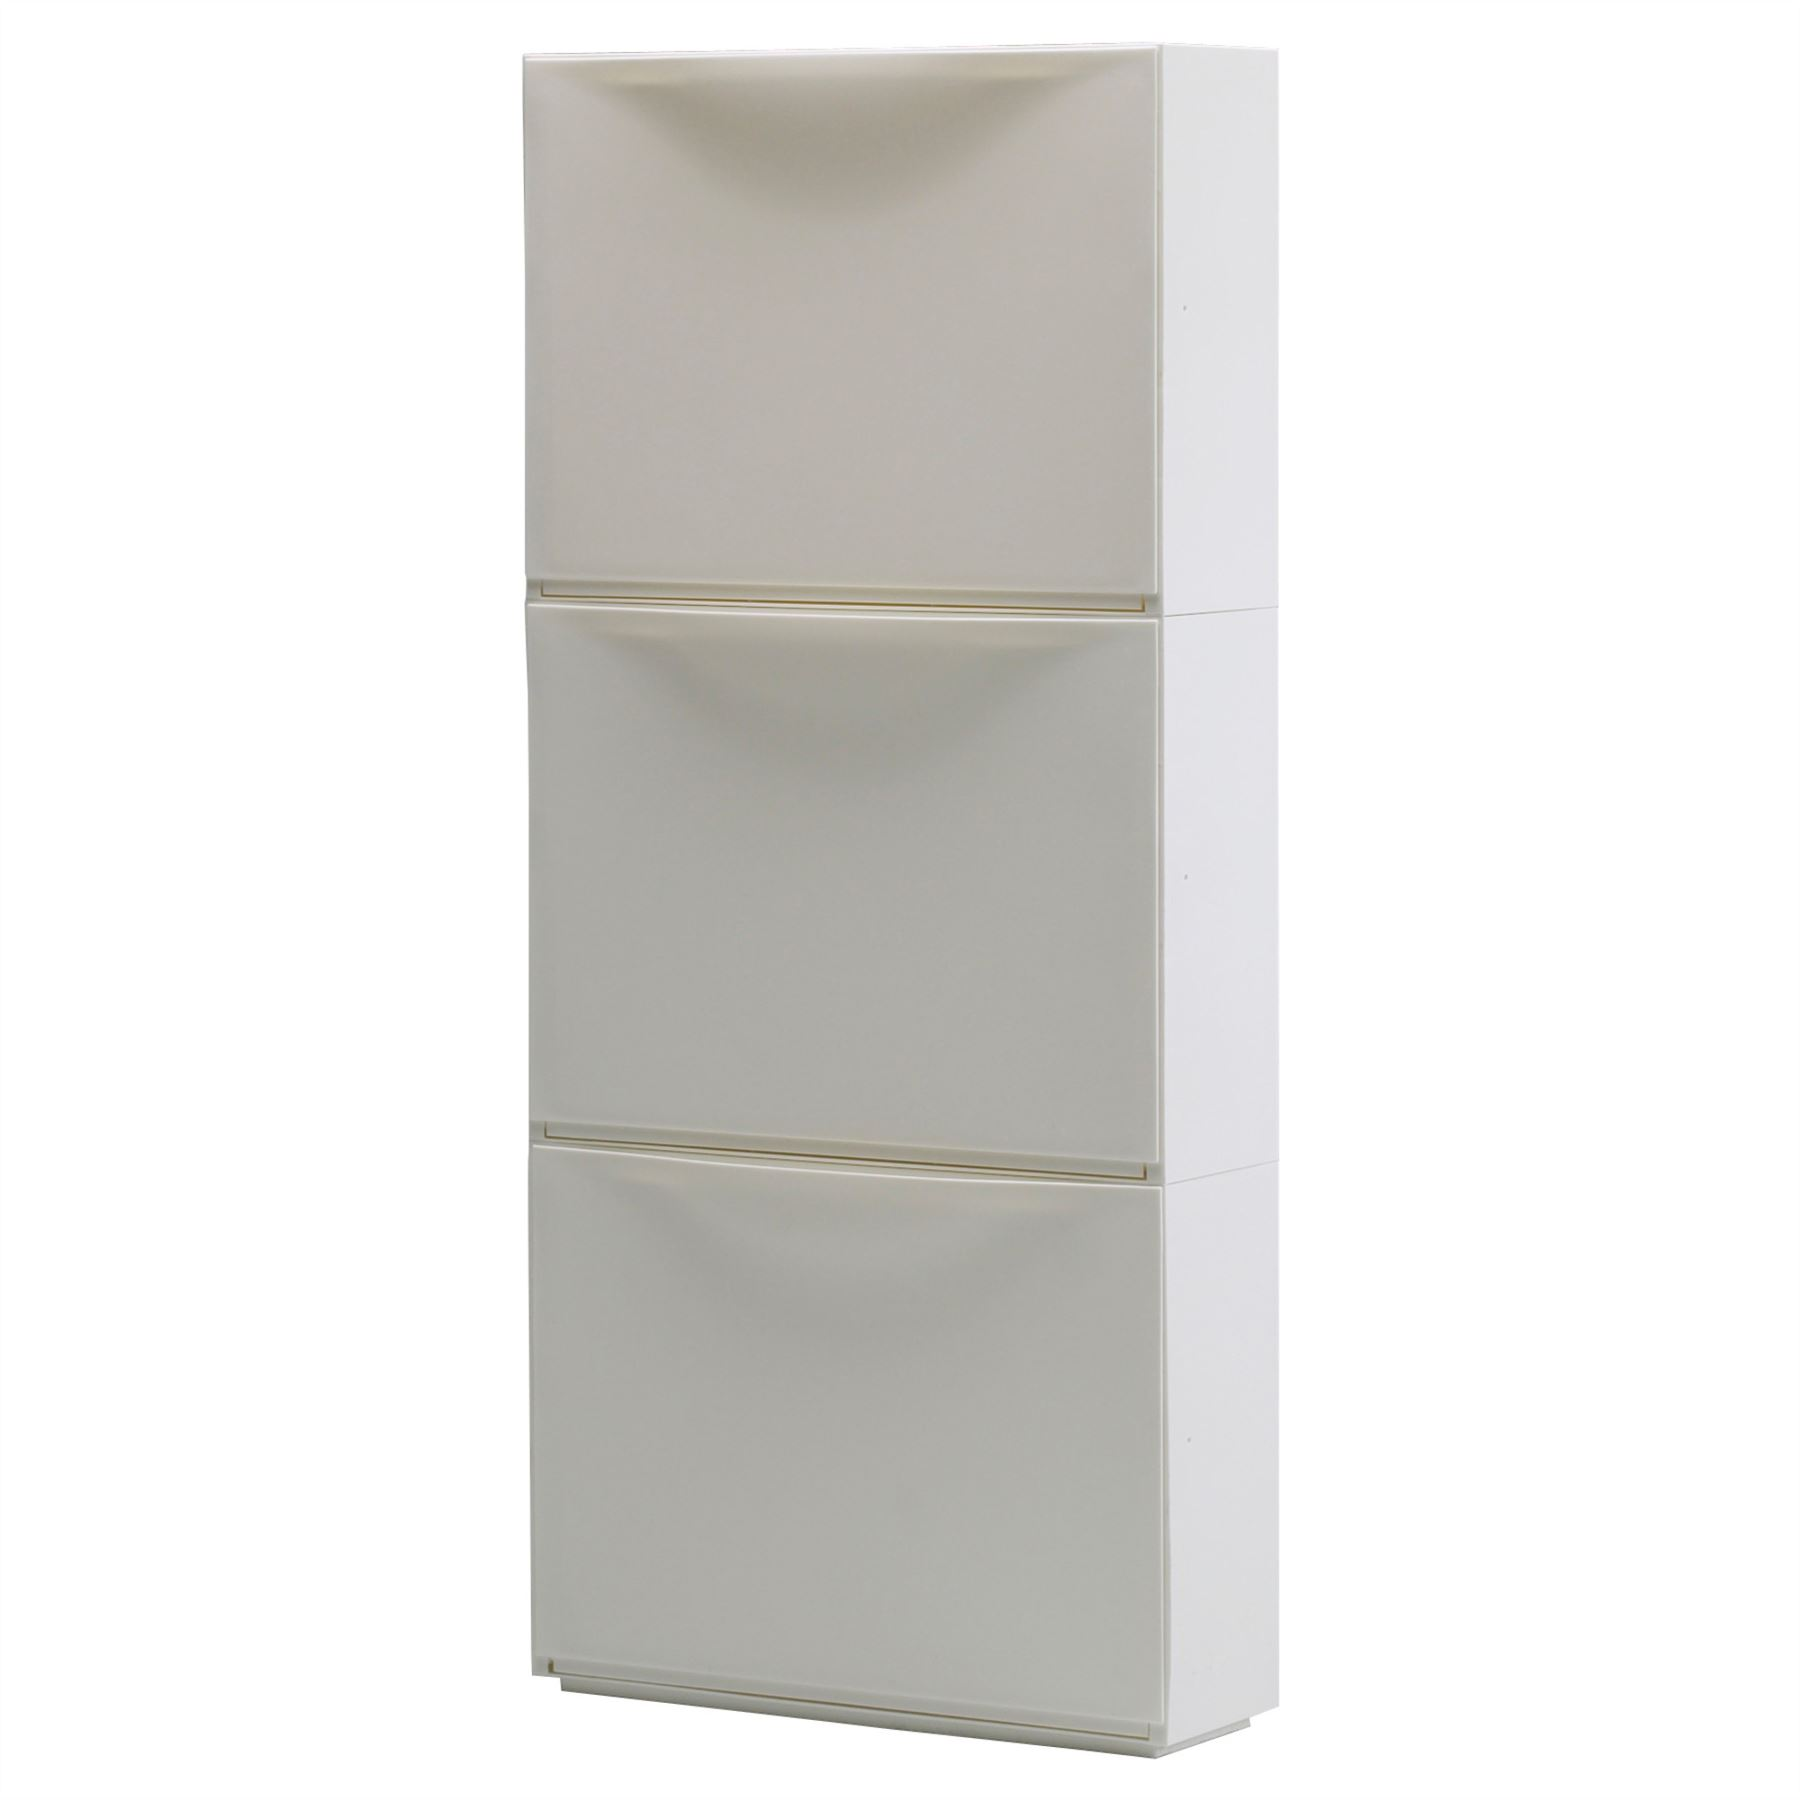 ikea trones shoe storage cabinet 3 pack white new ebay. Black Bedroom Furniture Sets. Home Design Ideas